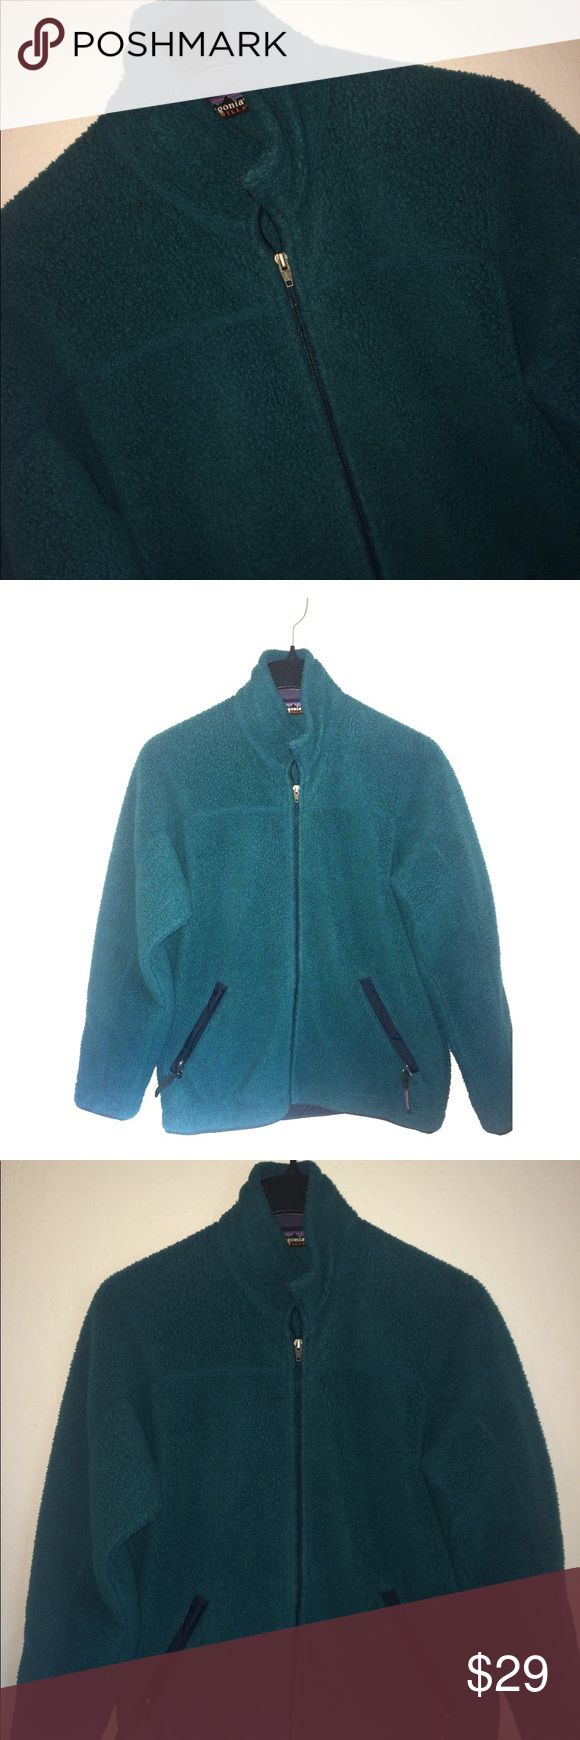 """Patagonia Fleece Synchilla Teal Blue Green Jacket For sale:Patagonia Fleece Synchilla Full Zip Teal Blue Green Jacket Men's Size SMALL. Jacket features two front zippers with logo pulls. Dimensions:acrossthe chest,approximately22"""". USA Made. Interested?Thank you. Patagonia Jackets & Coats"""